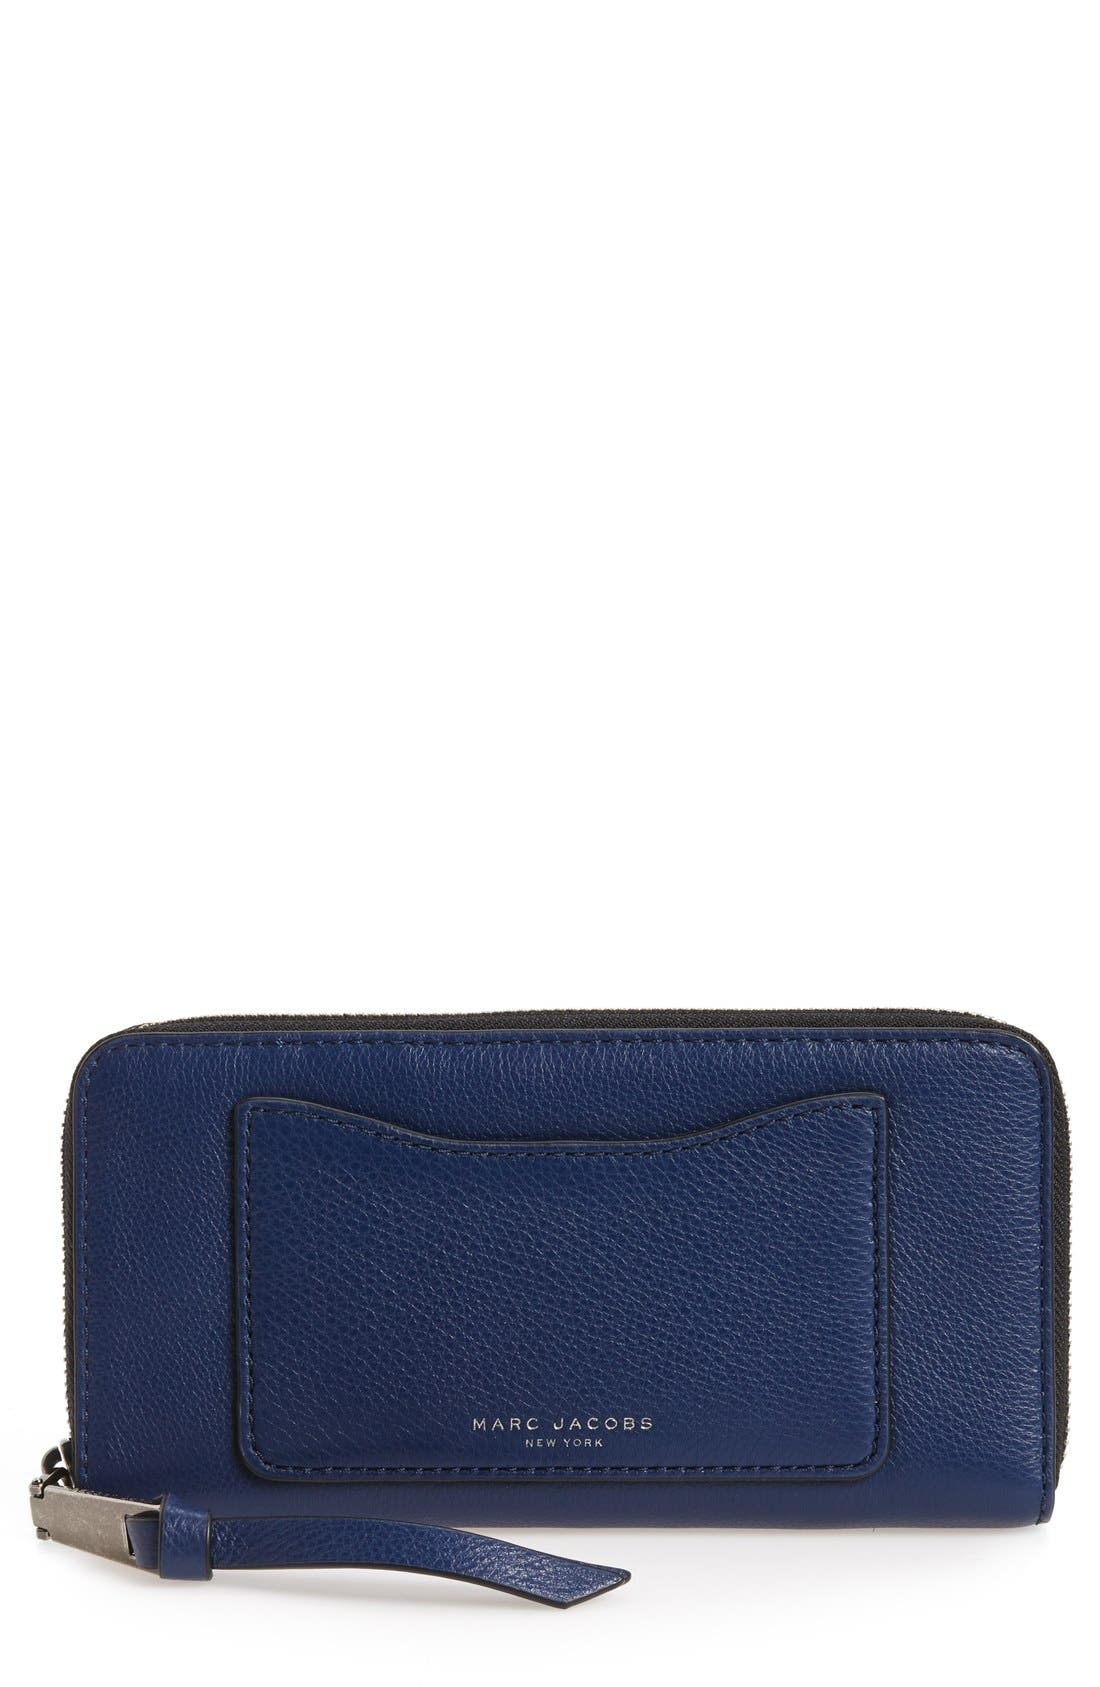 Alternate Image 1 Selected - MARC JACOBS 'Recruit Vertical' Leather Wallet